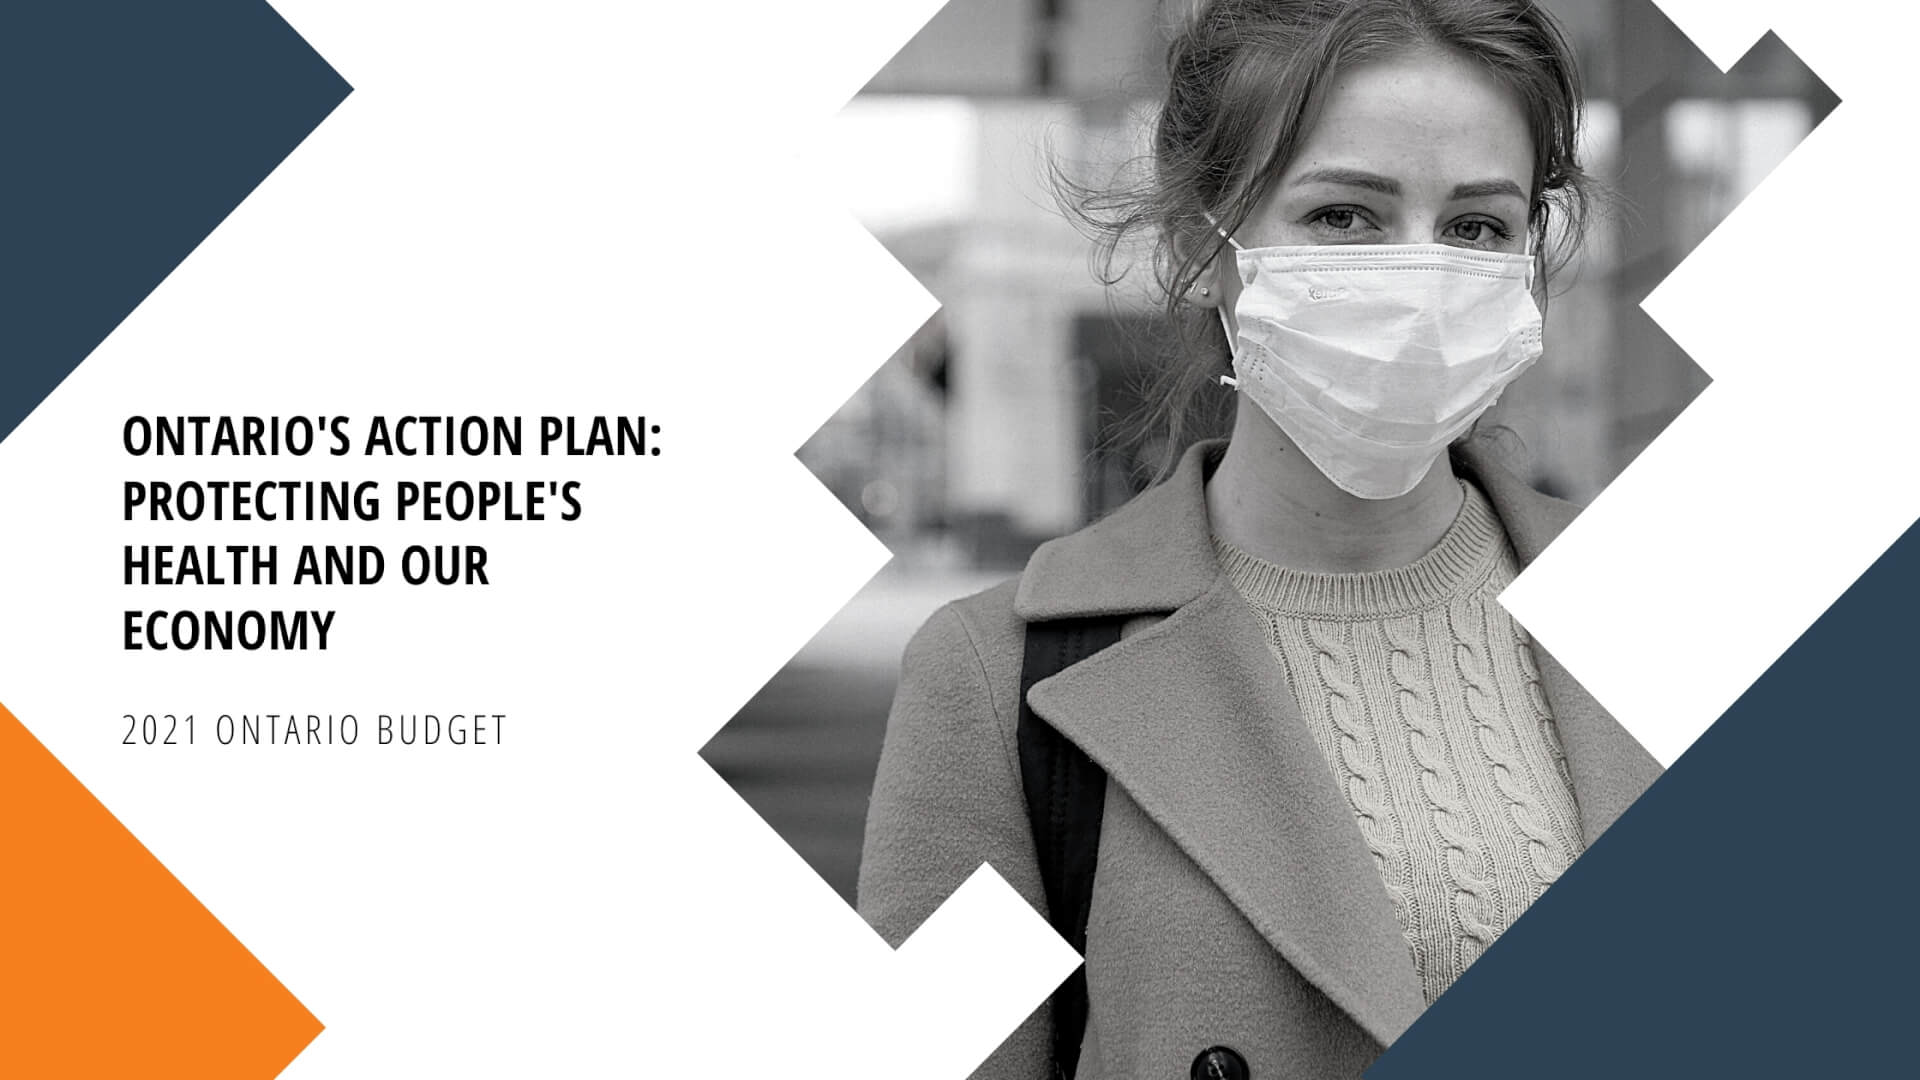 Ontario's Action Plan: Protecting People's Health and Our Economy